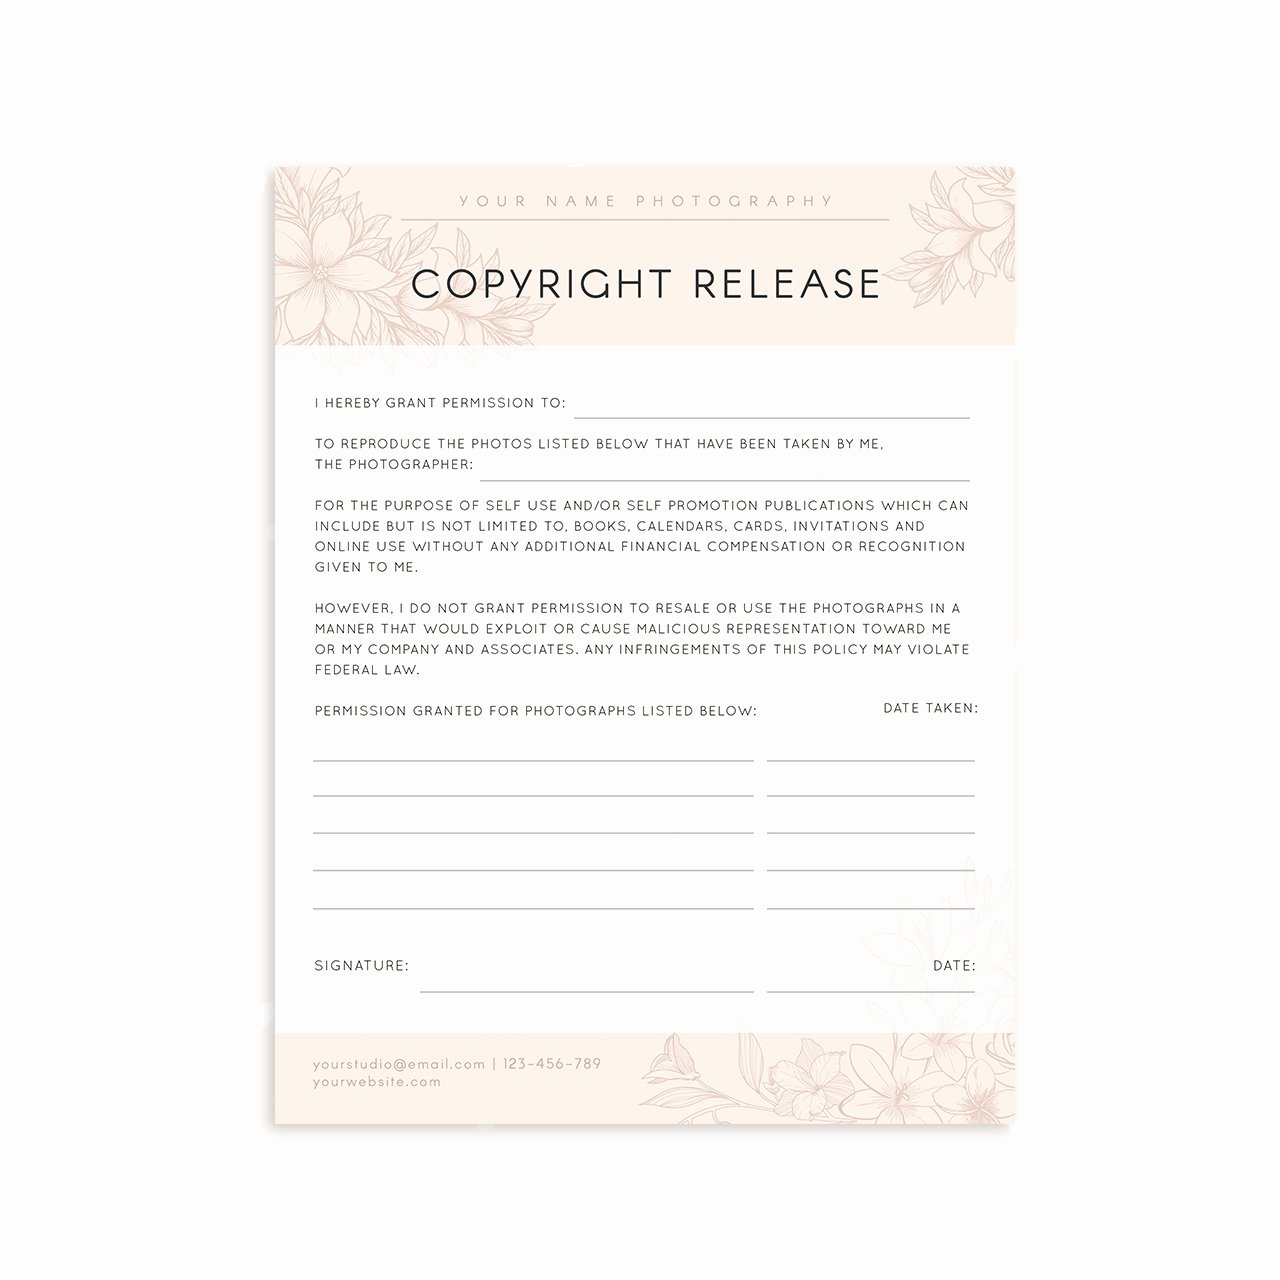 Copyright Release form Template Inspirational Copyright Release form Template Strawberry Kit